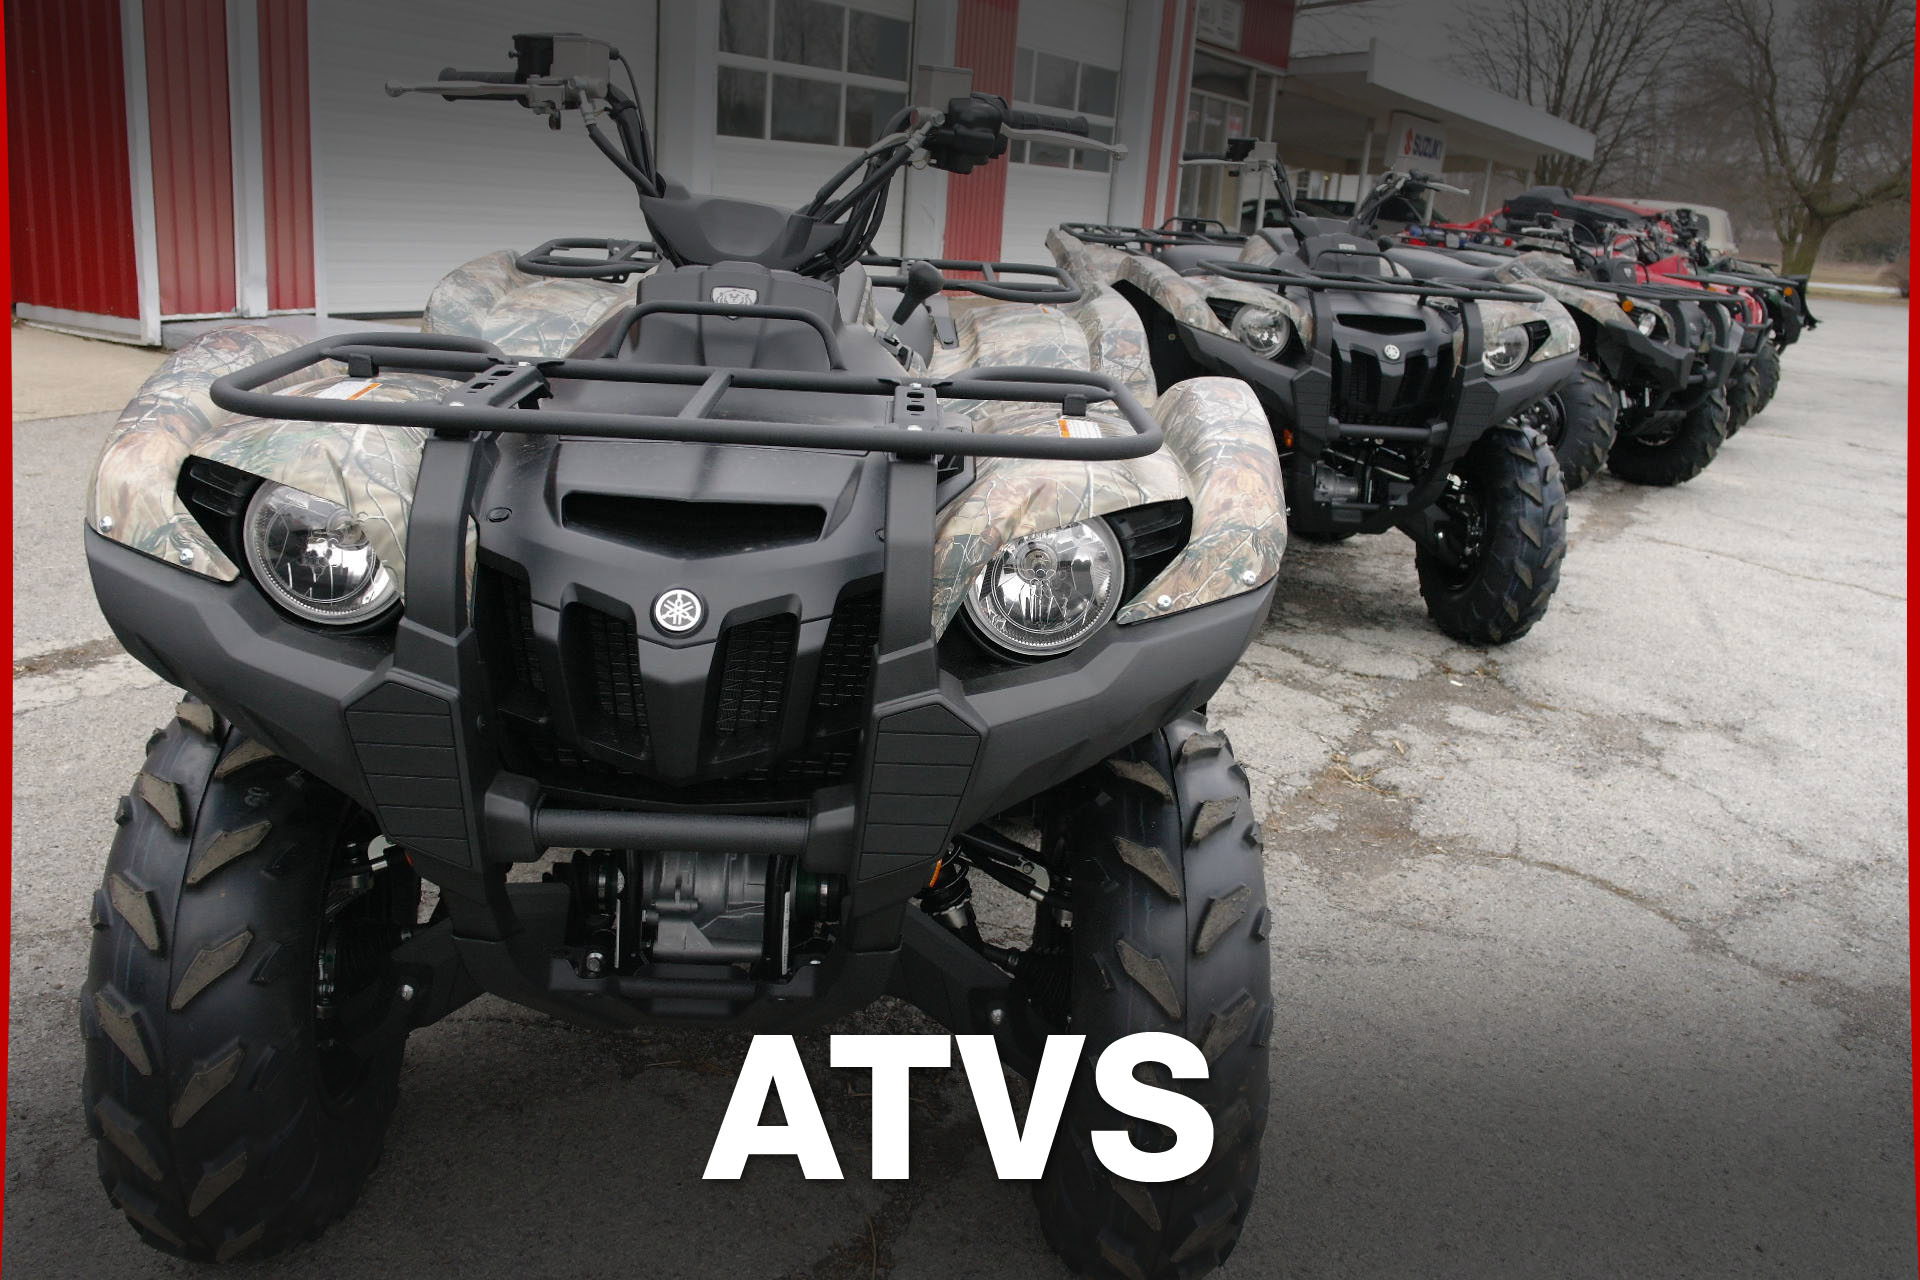 Yamaha ATVs :: Baldwin's Cycle